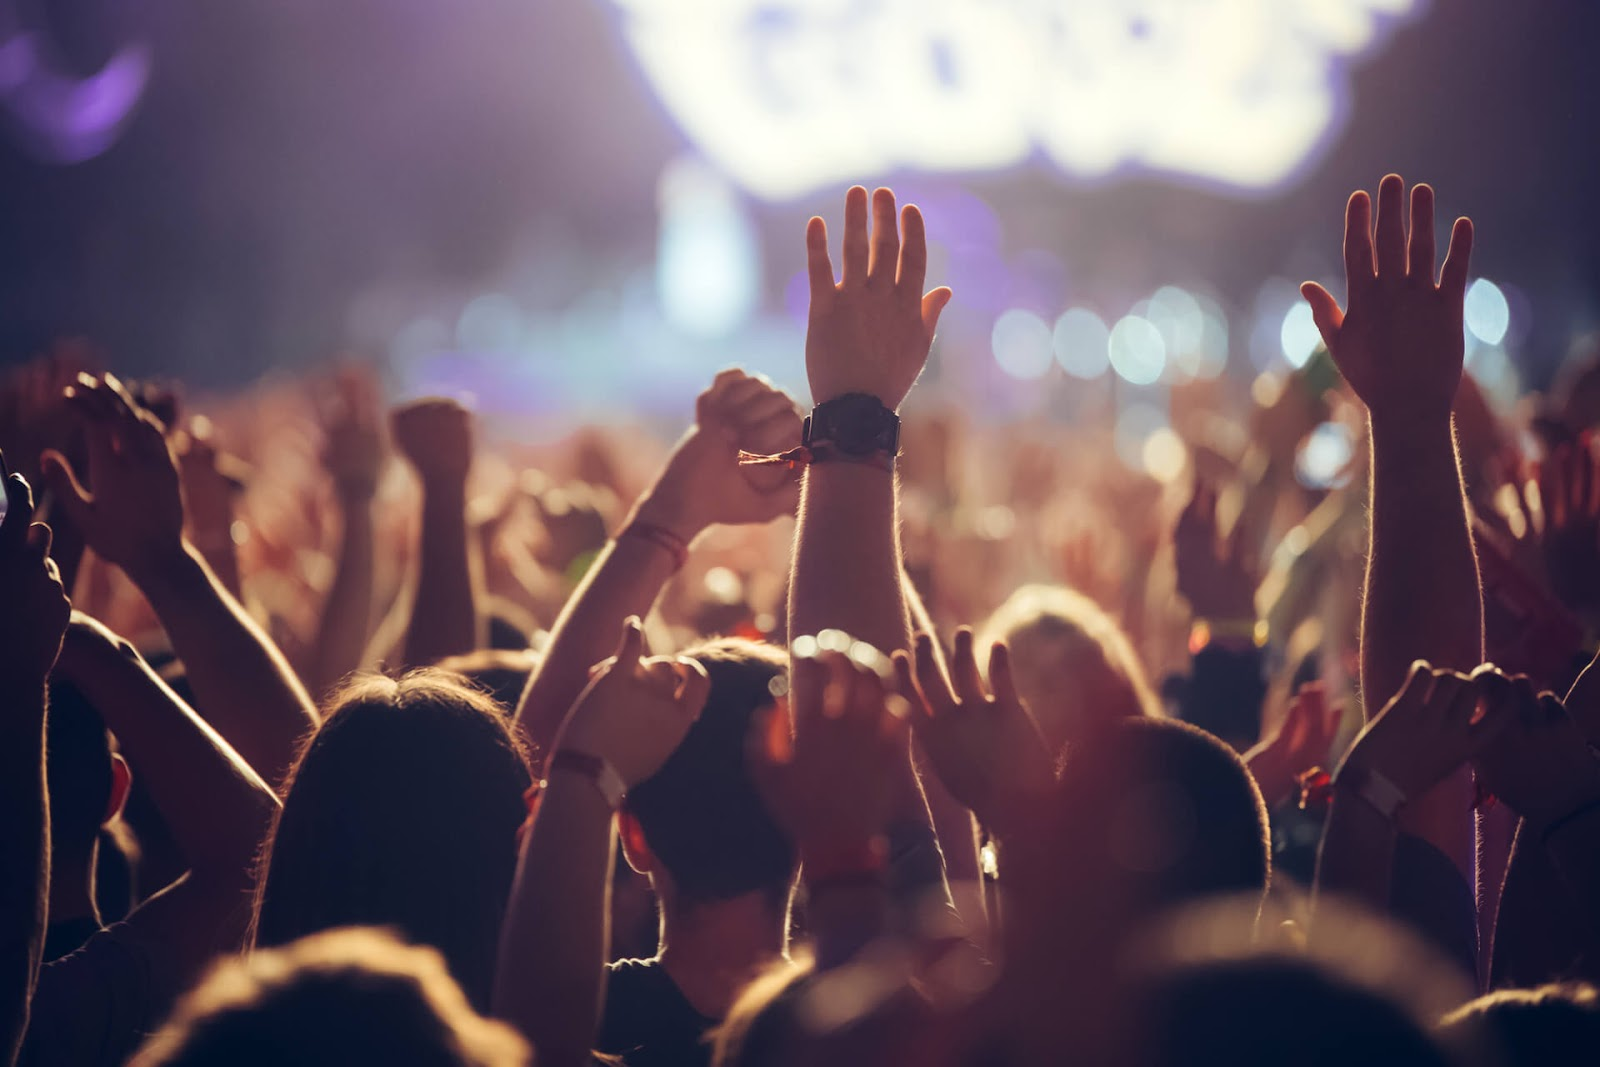 A crowd with their hands raised at a concert